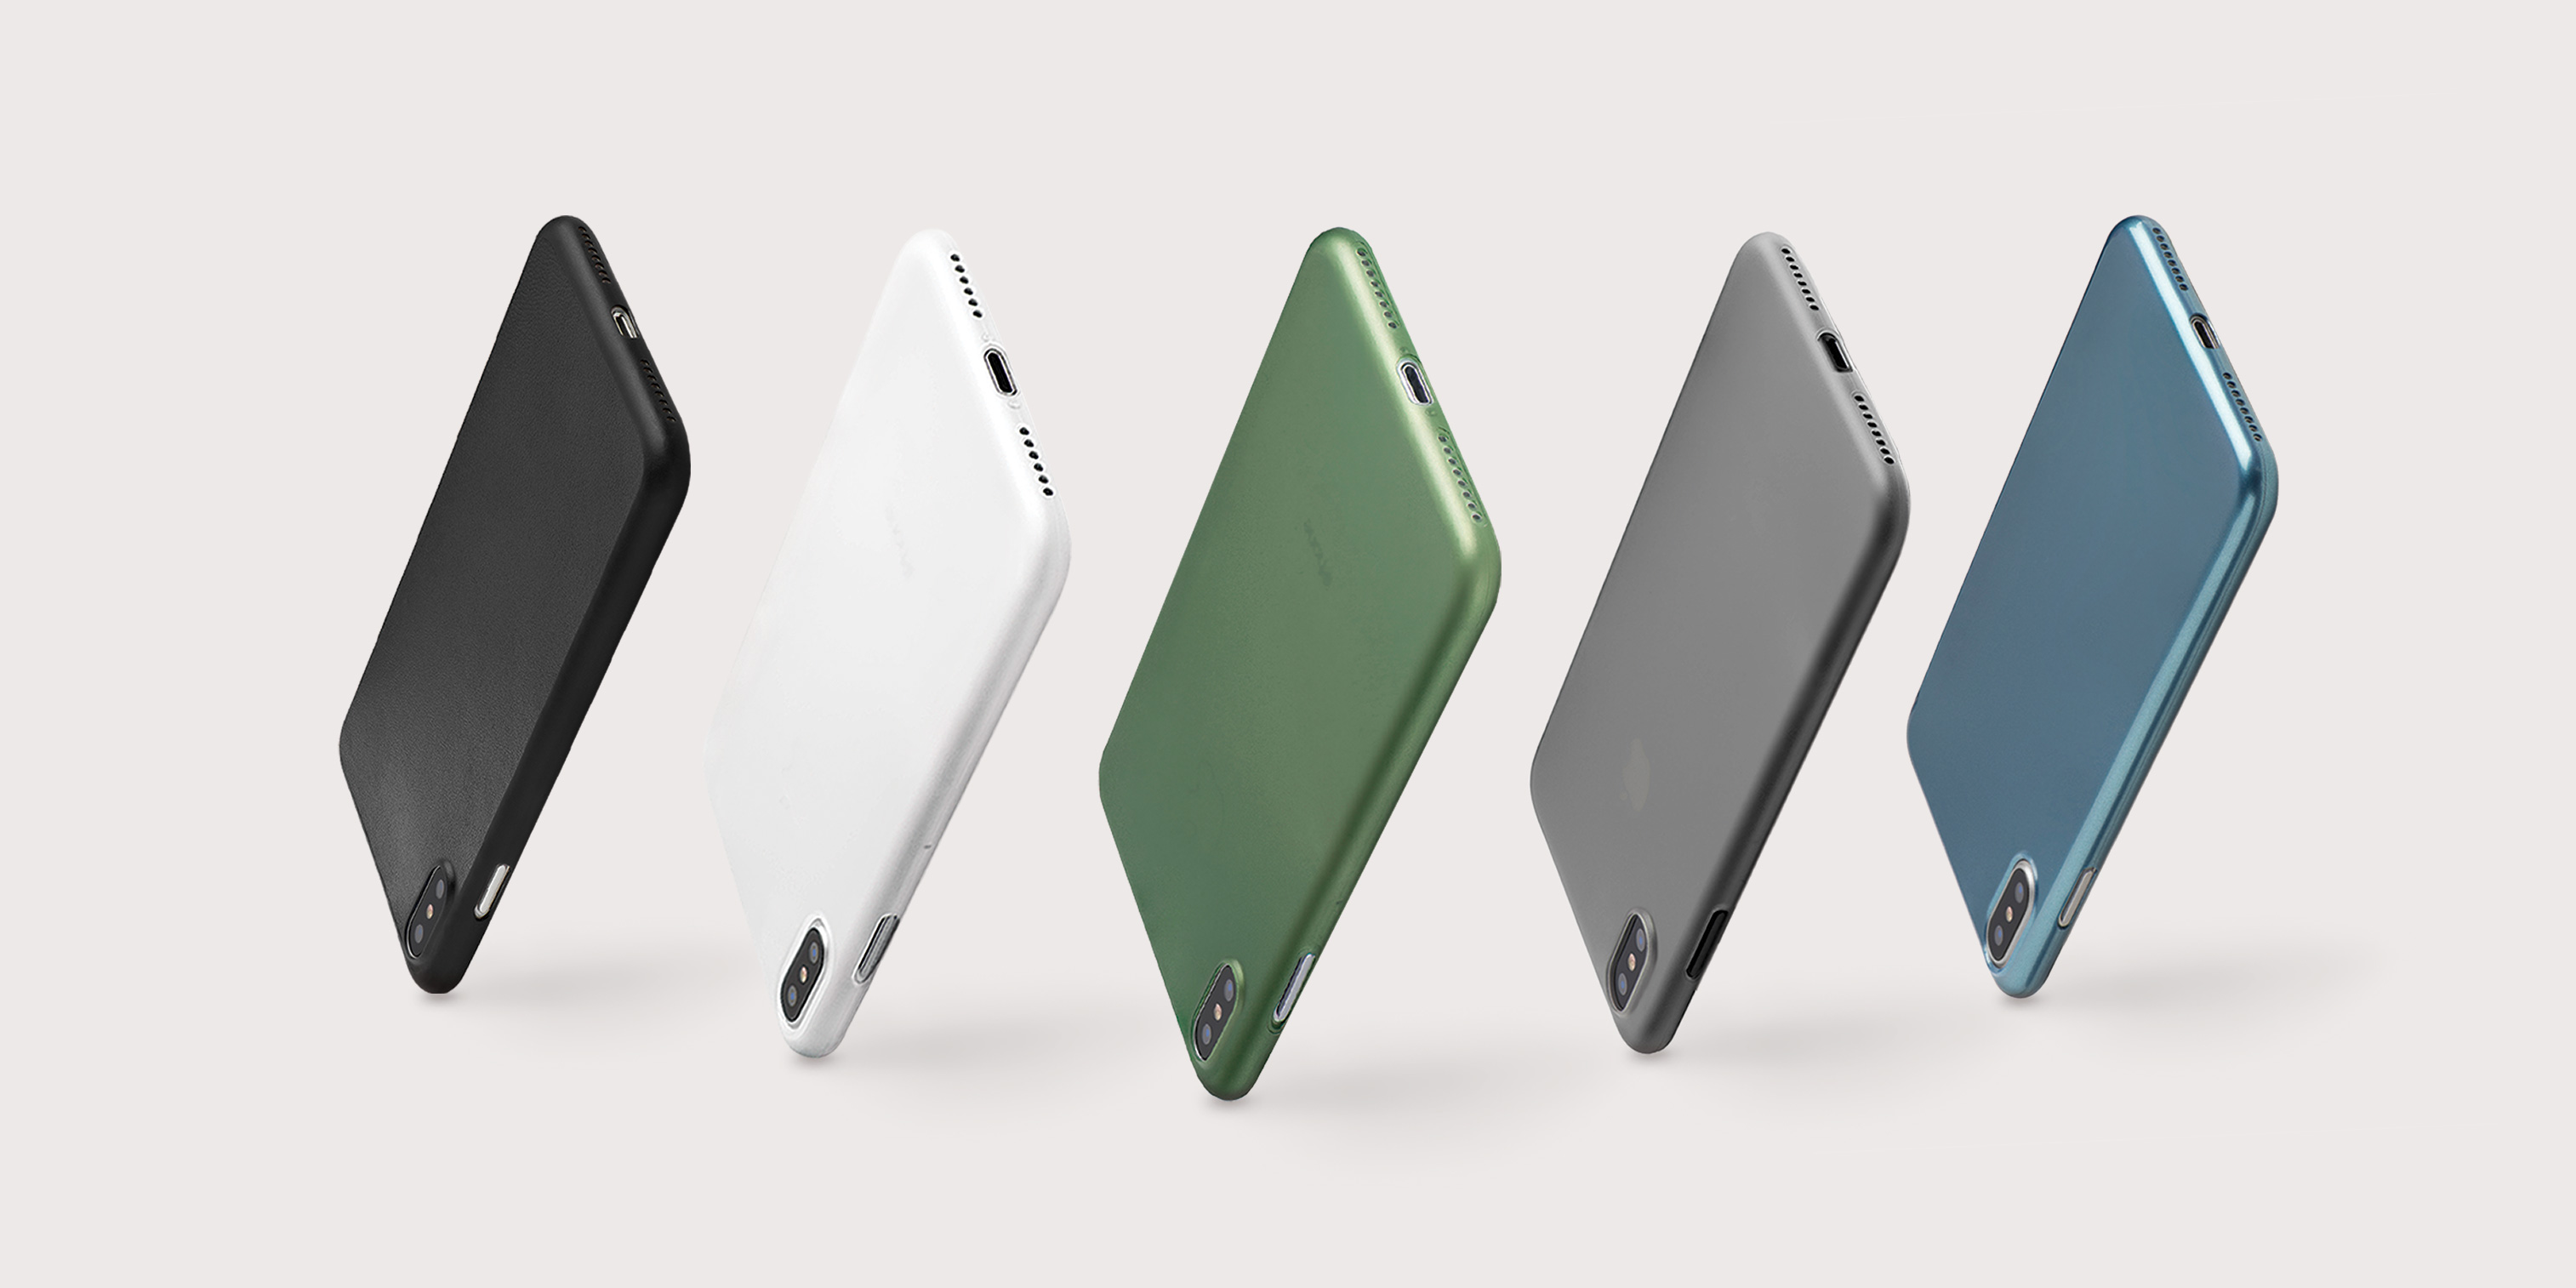 Totallee offers the most minimalistic collection of super thin iPhone X cases